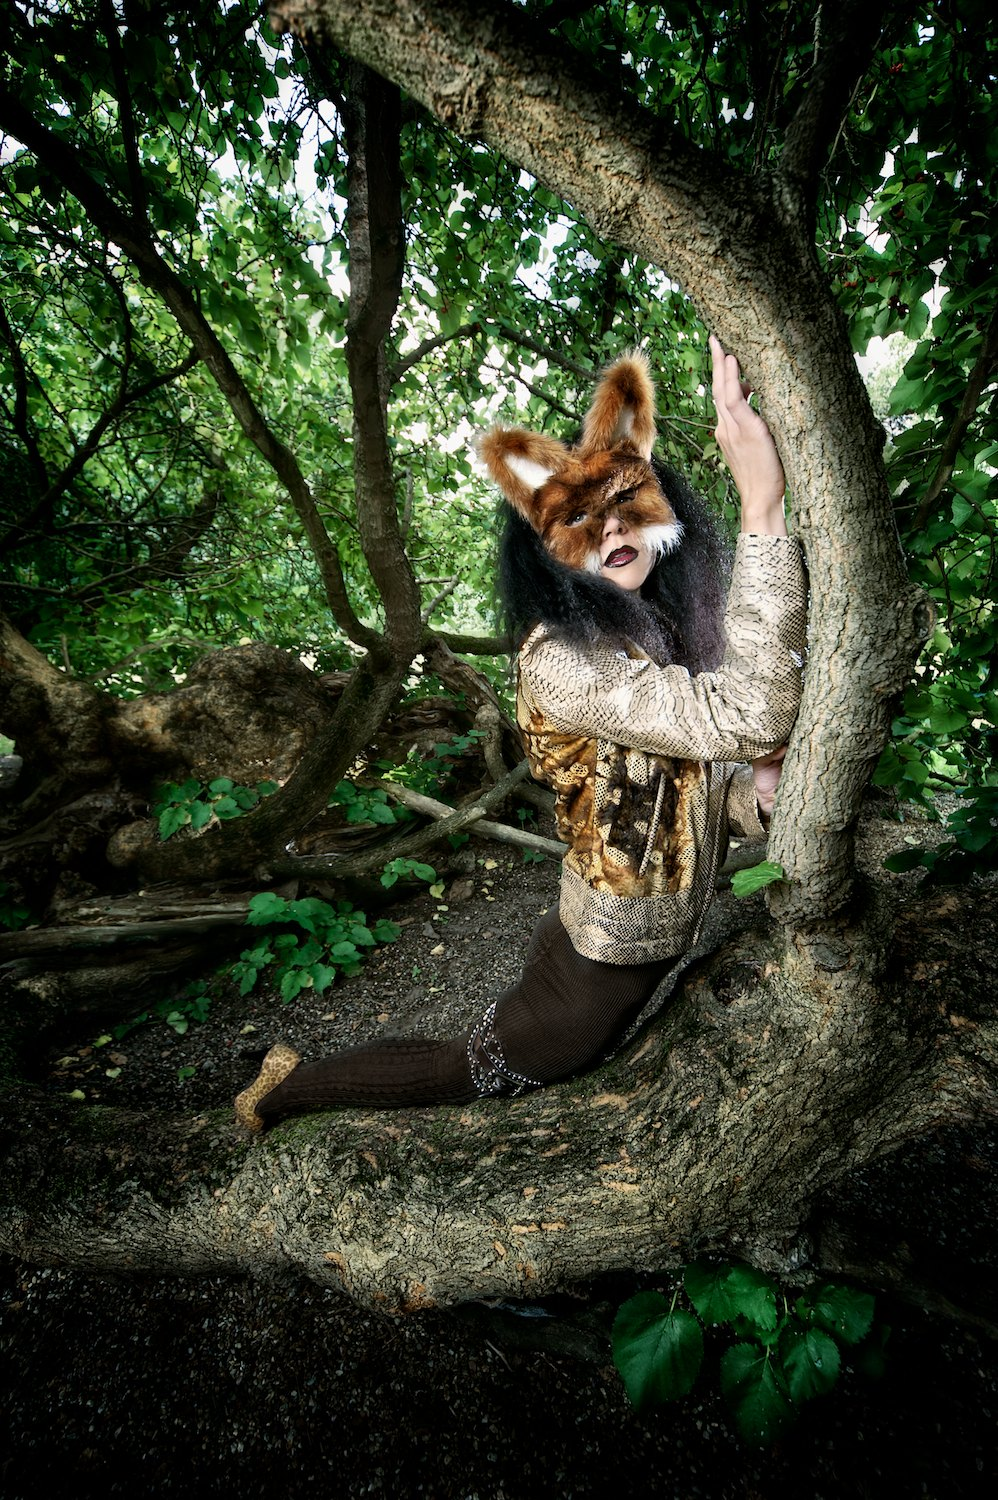 mystic magic, Pixbeat Photo, mask, fox mask, masquerade, animal, animal masks, fashion, vintage, vintage fashion, photo, photography, fur, feathers, couture, designer, inspiration, imagination, avant garde, creative, fashion photography, Animal Heritage, fashion designer, mask designer, fox, biker, leather